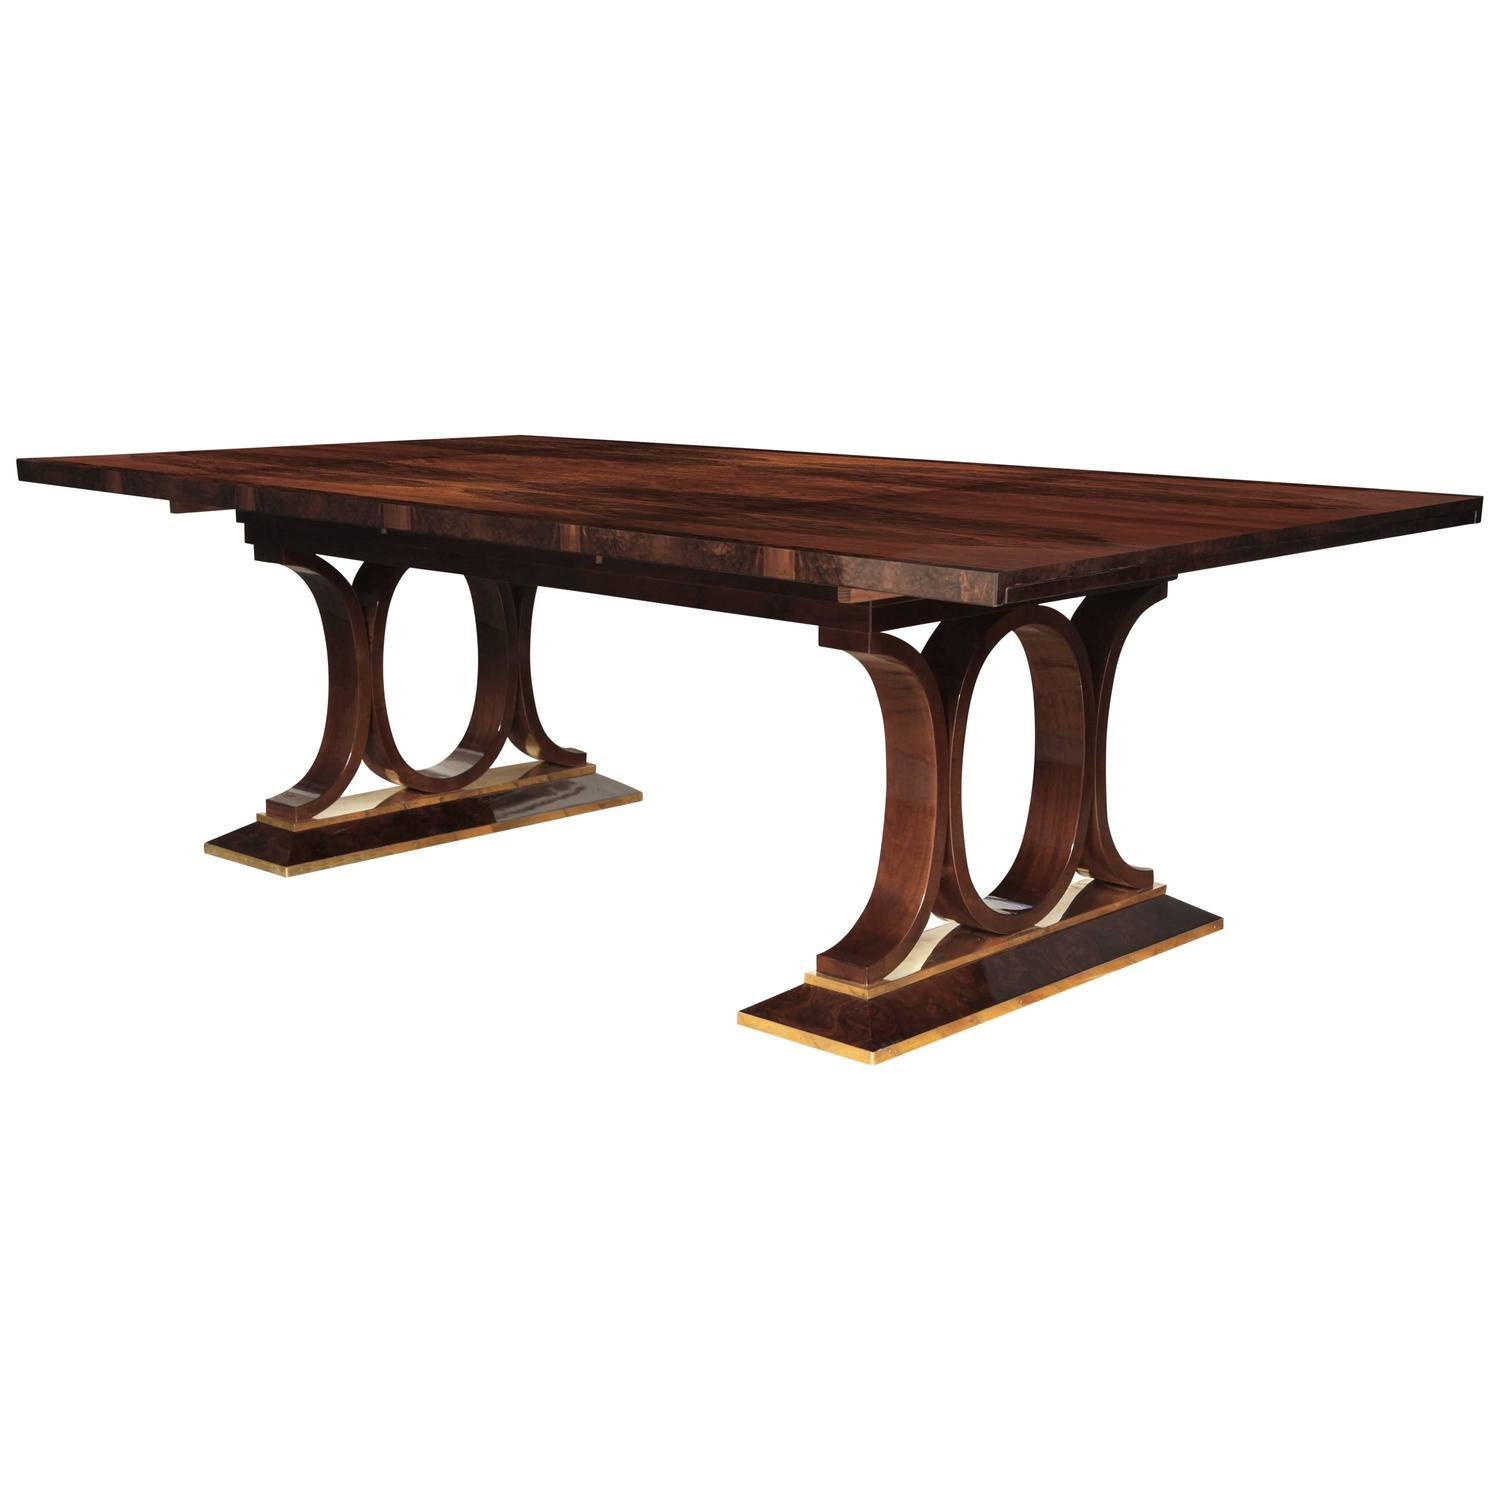 Superb art deco dining table at 1stdibs for Art dining room furniture